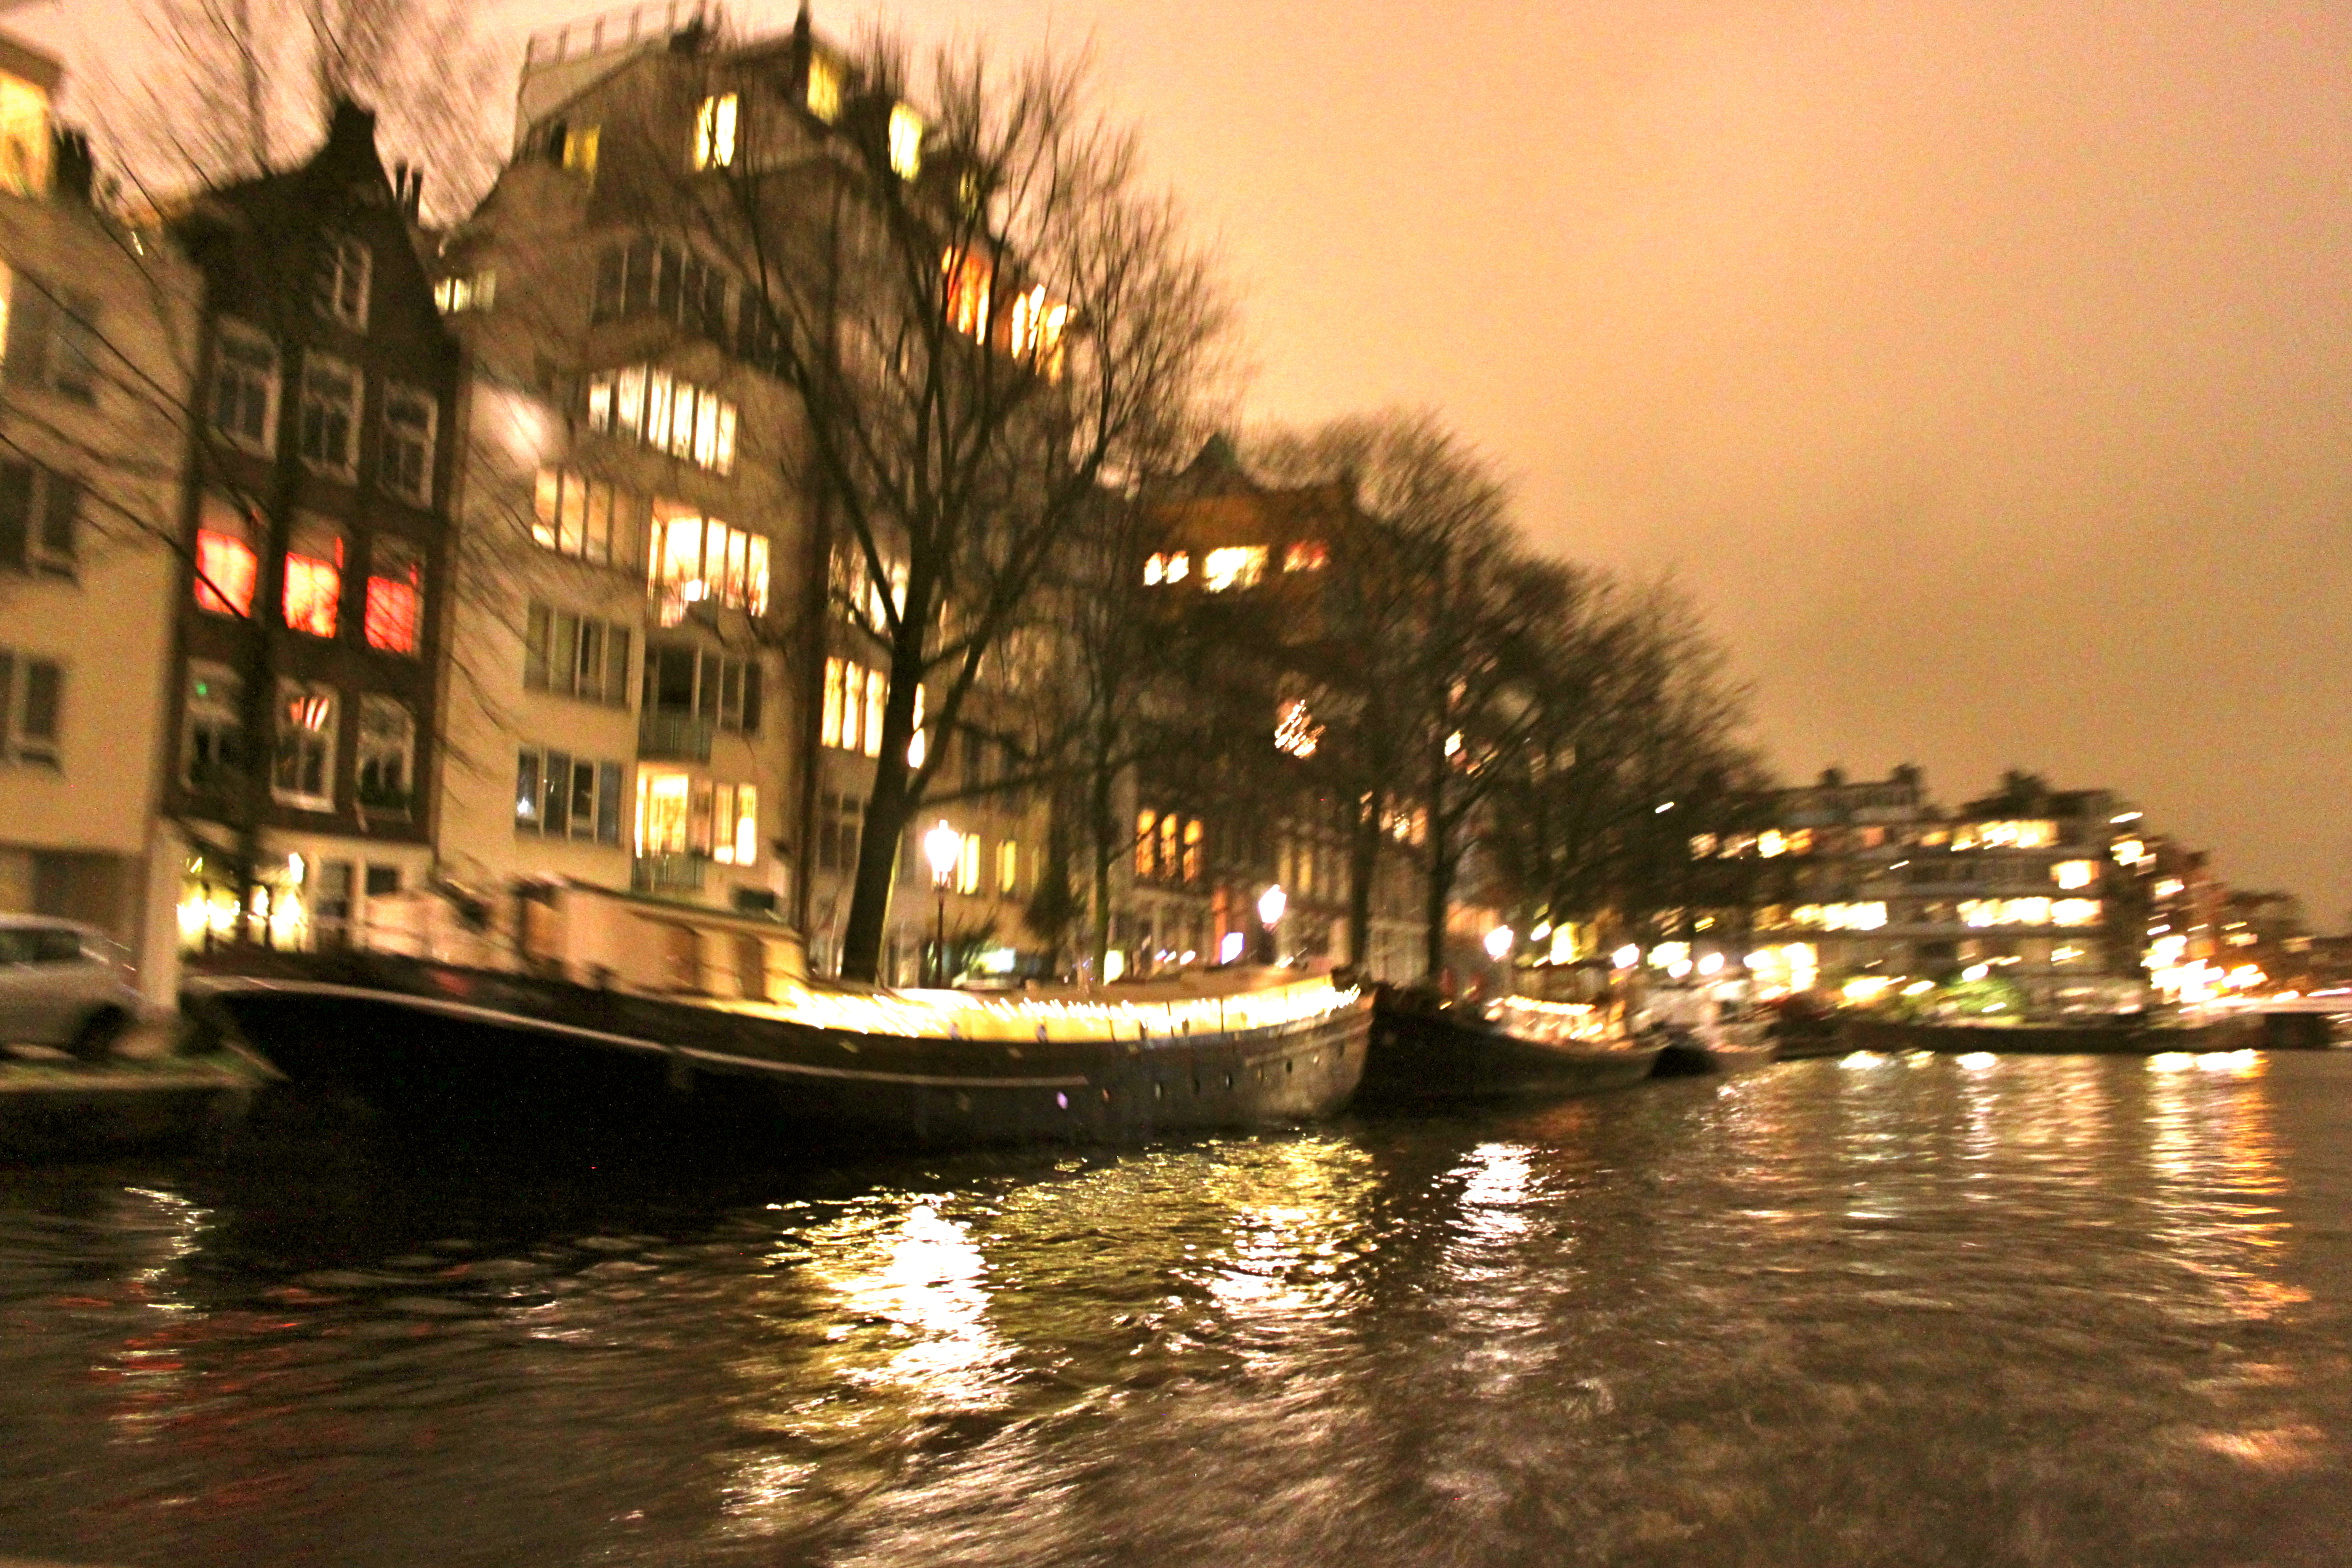 Mr. M & I hopped on a boat cruising the canals for a view of the city at night.